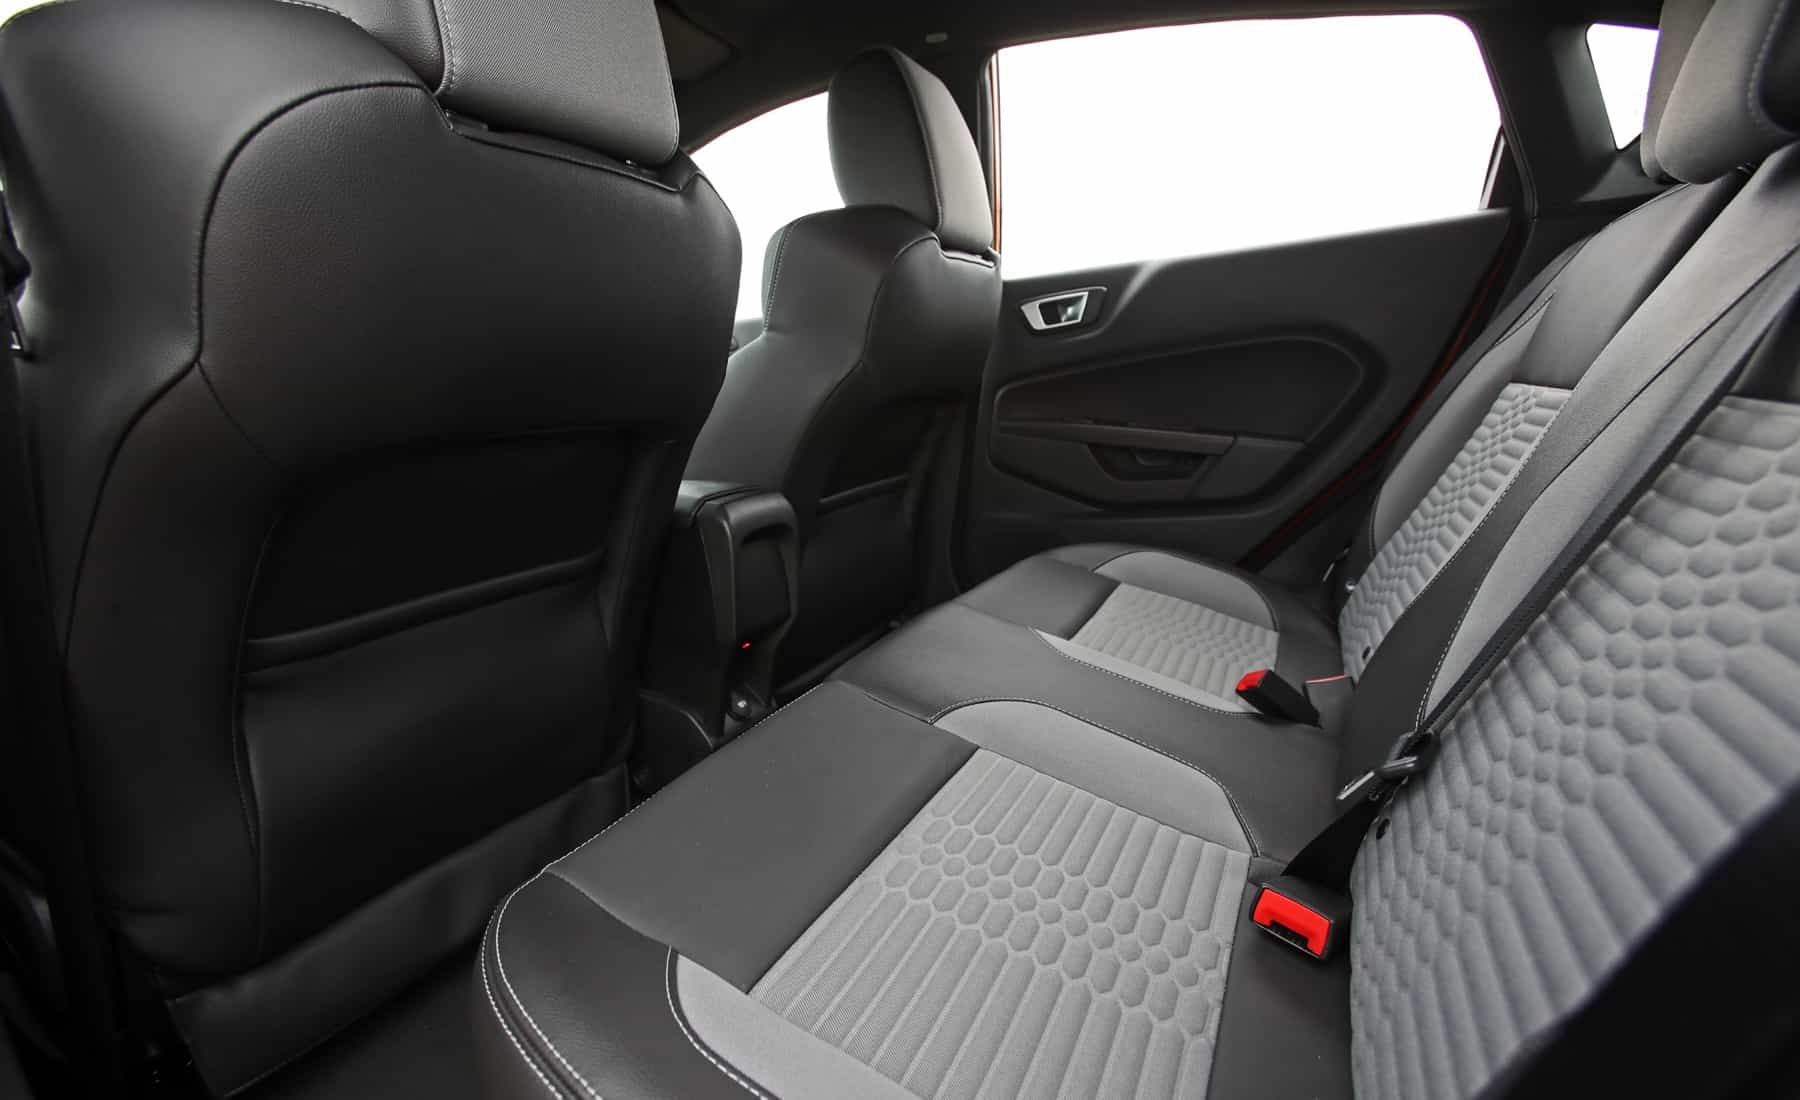 2017 Ford Fiesta ST Interior Seats Rear Space (Photo 23 of 47)